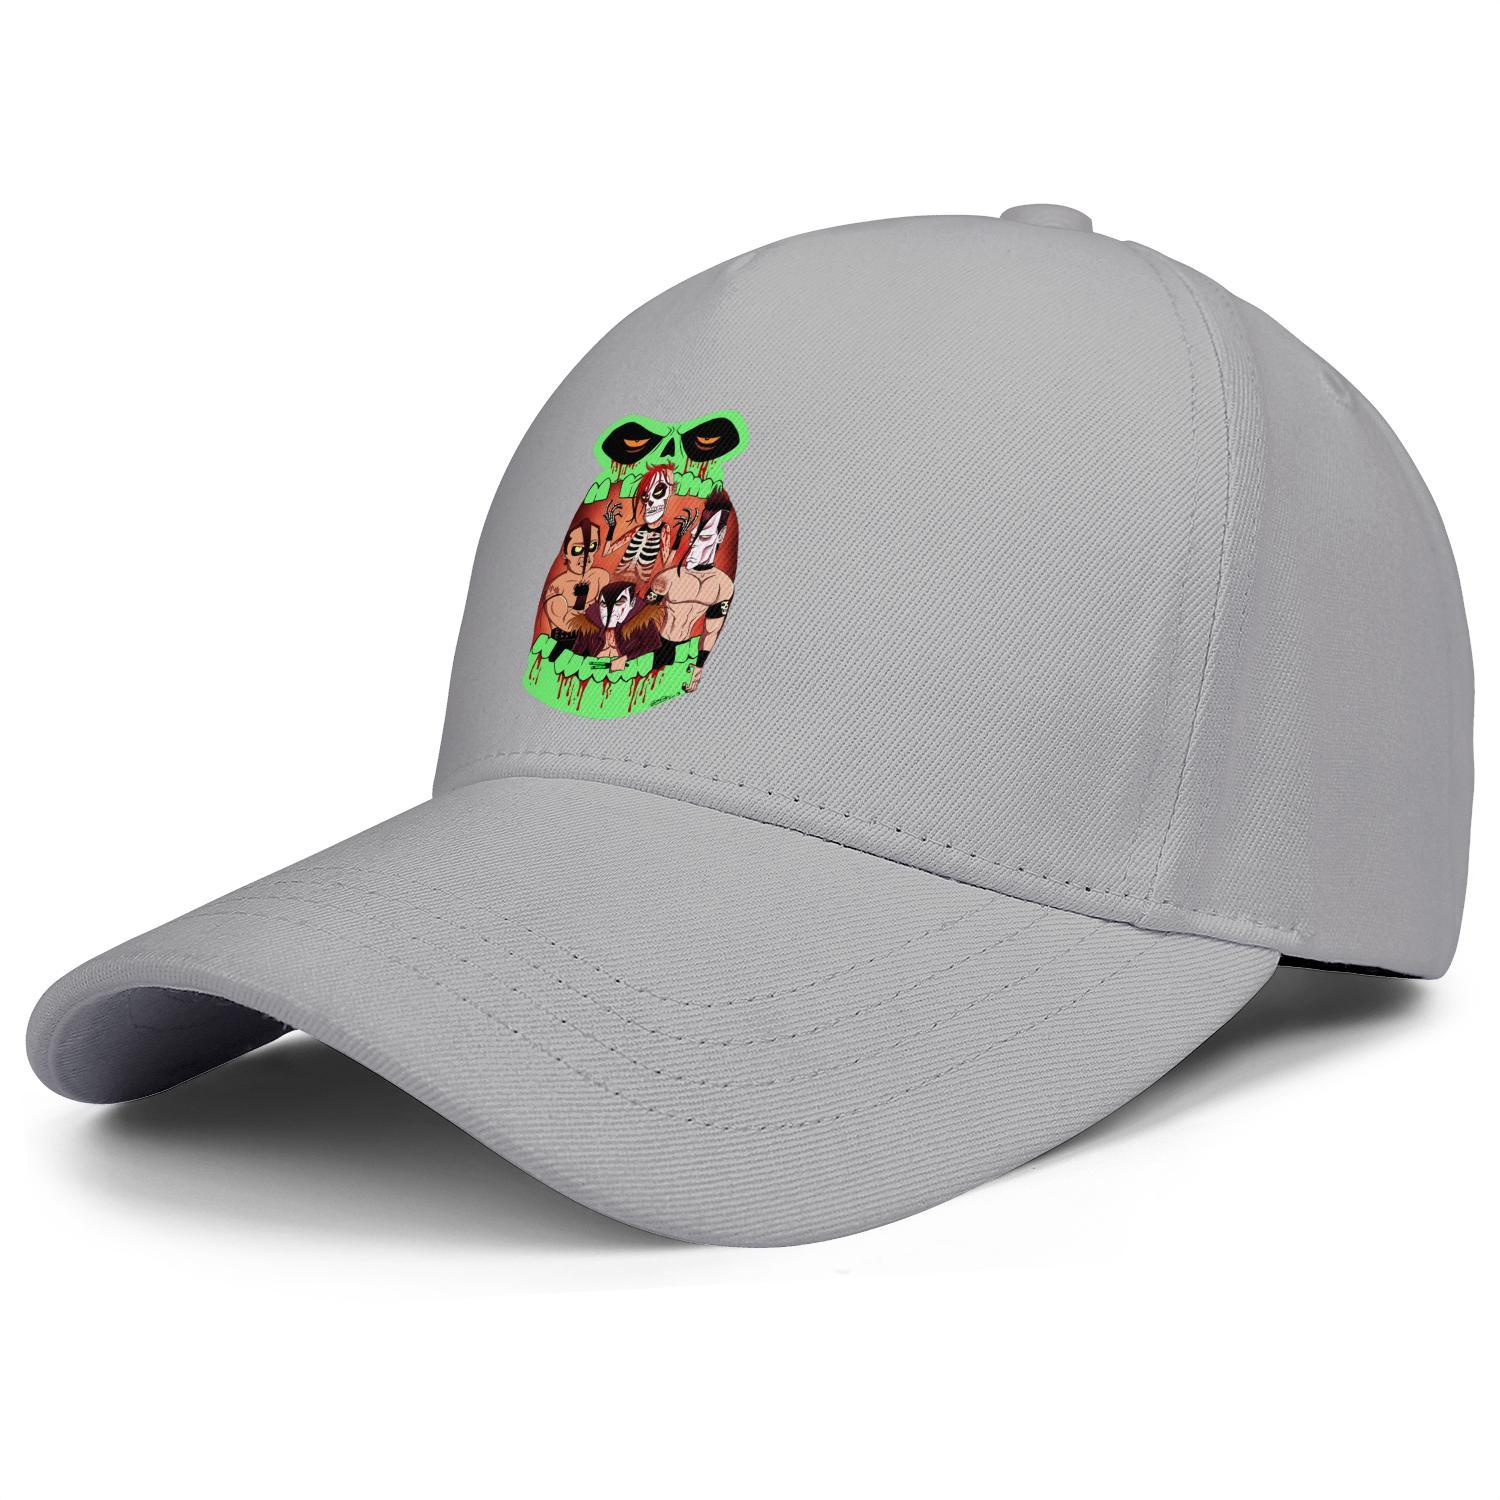 Casual Men Women visor cap Gallery Misfits Art people fitted baseball hats Messy hats All Cotton